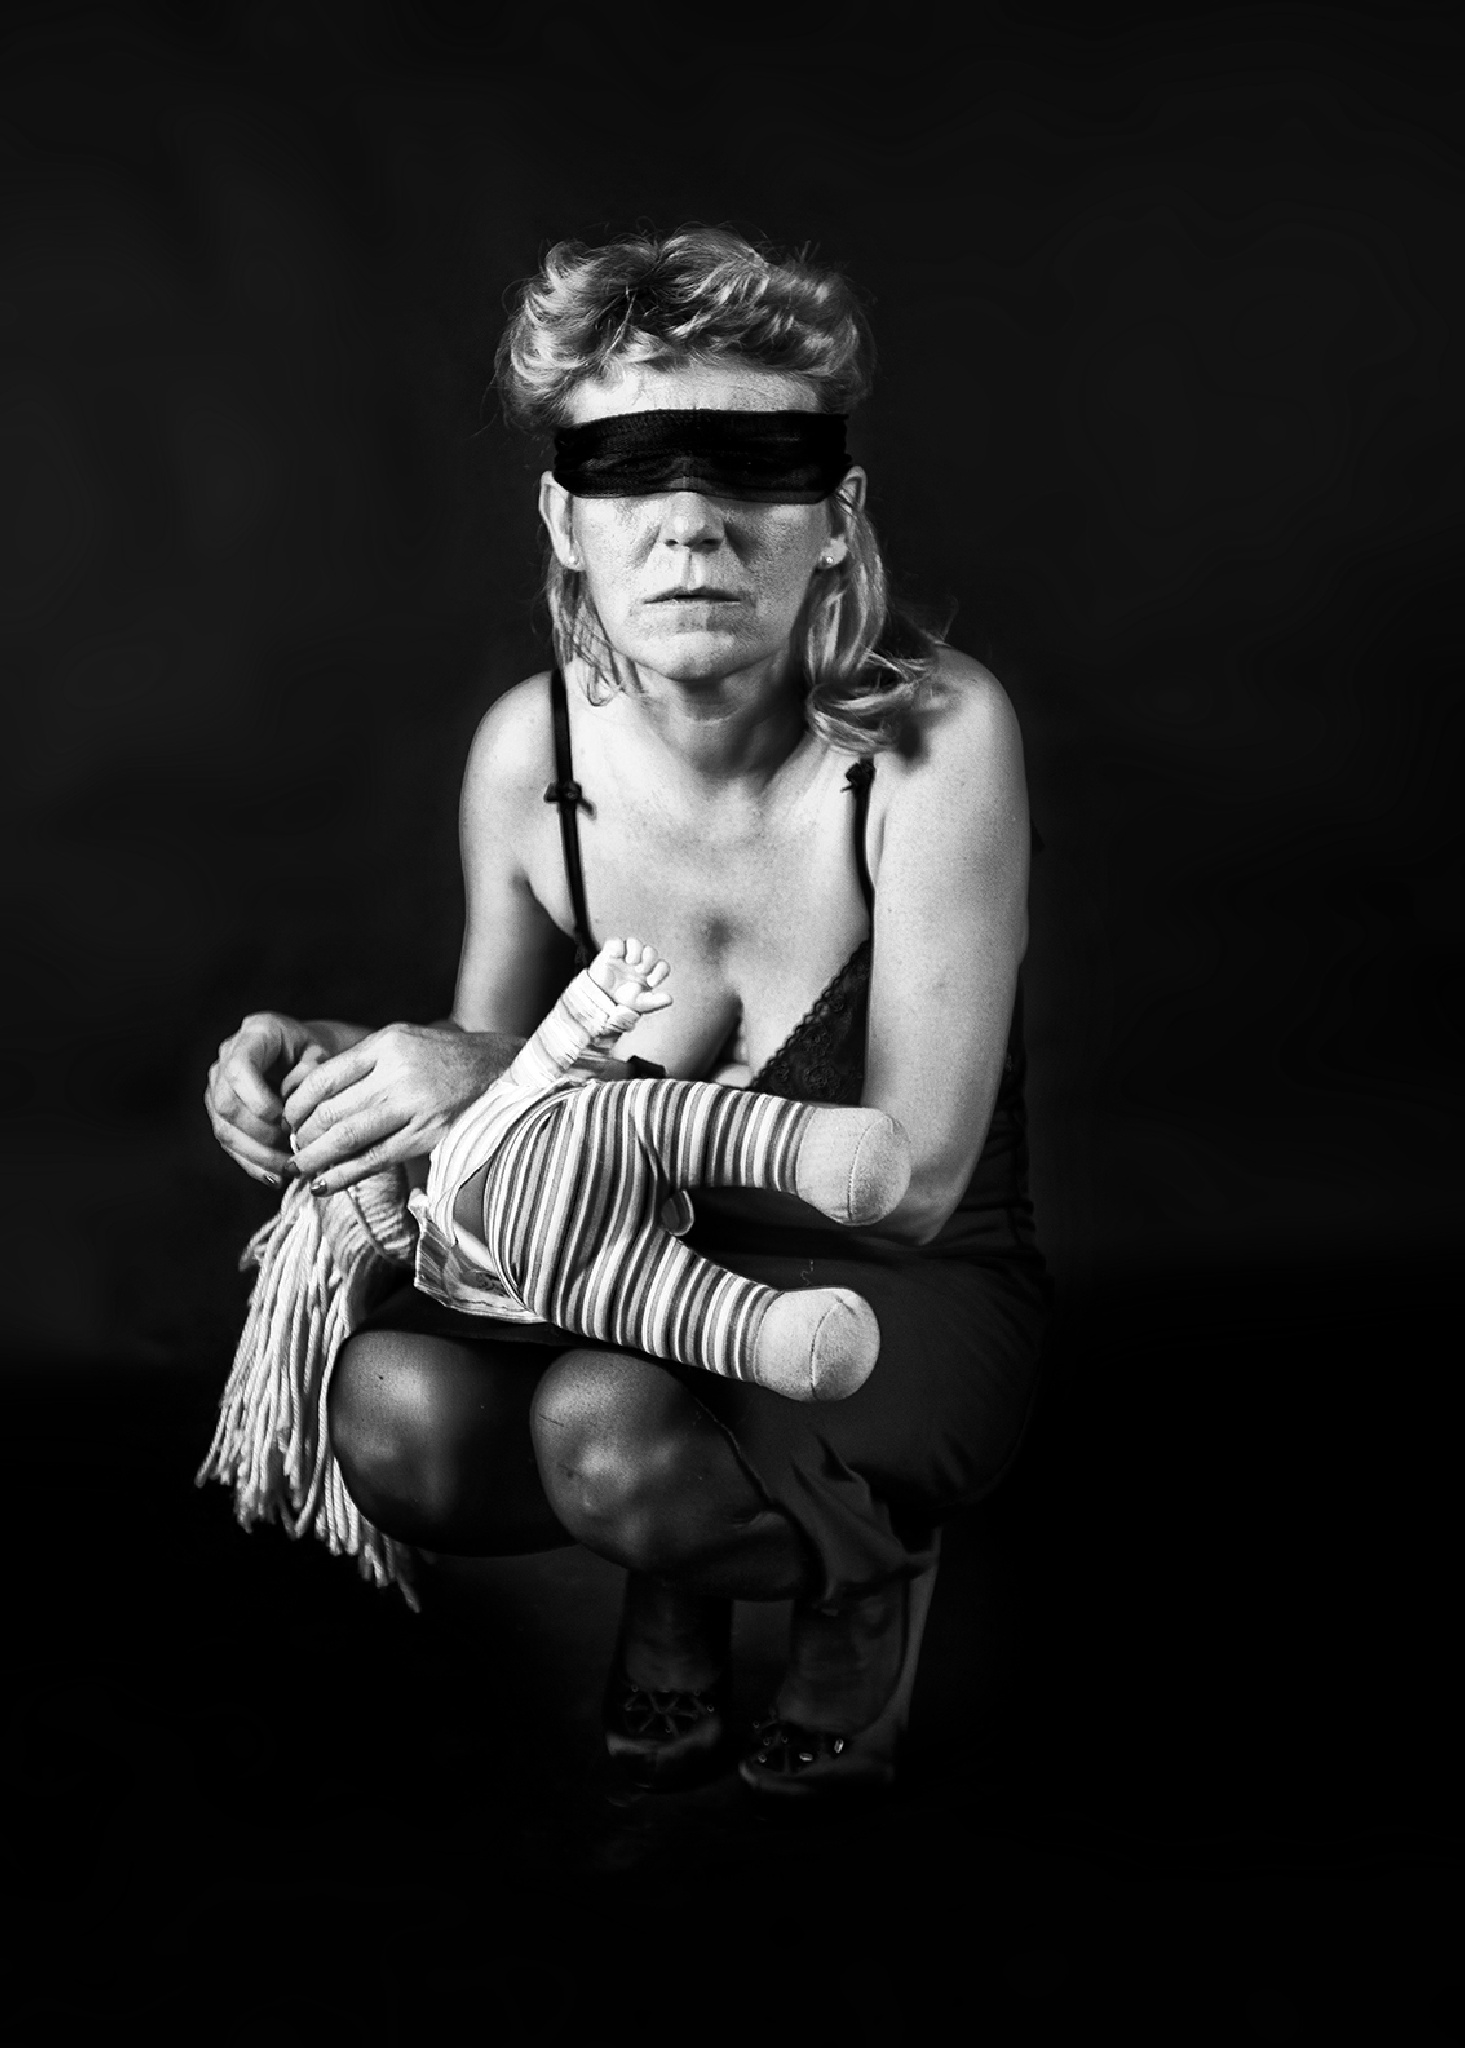 woman with doll blindfolded by Hybryds